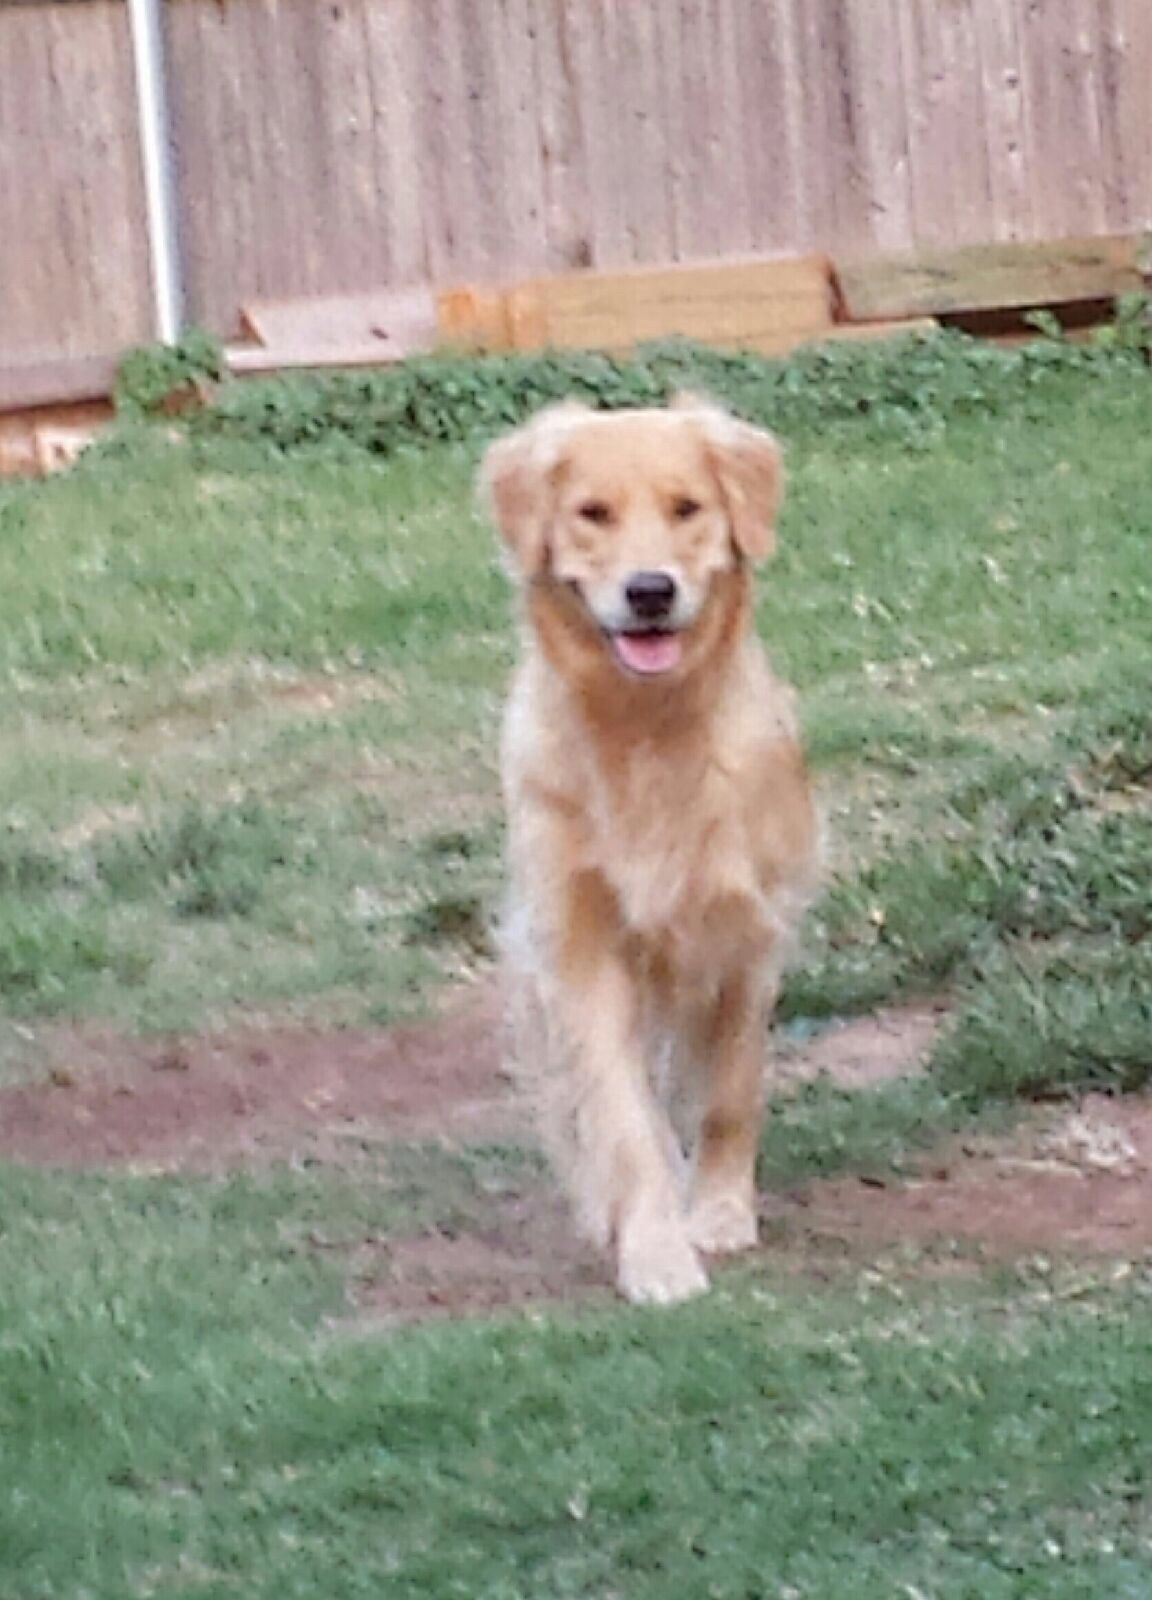 Oklahoma Kansas Texas Arkansas Puppies Obedience Field Conformation Agility Grca Benden Golden Retrievers Golden Retriever Retriever Puppy Retriever